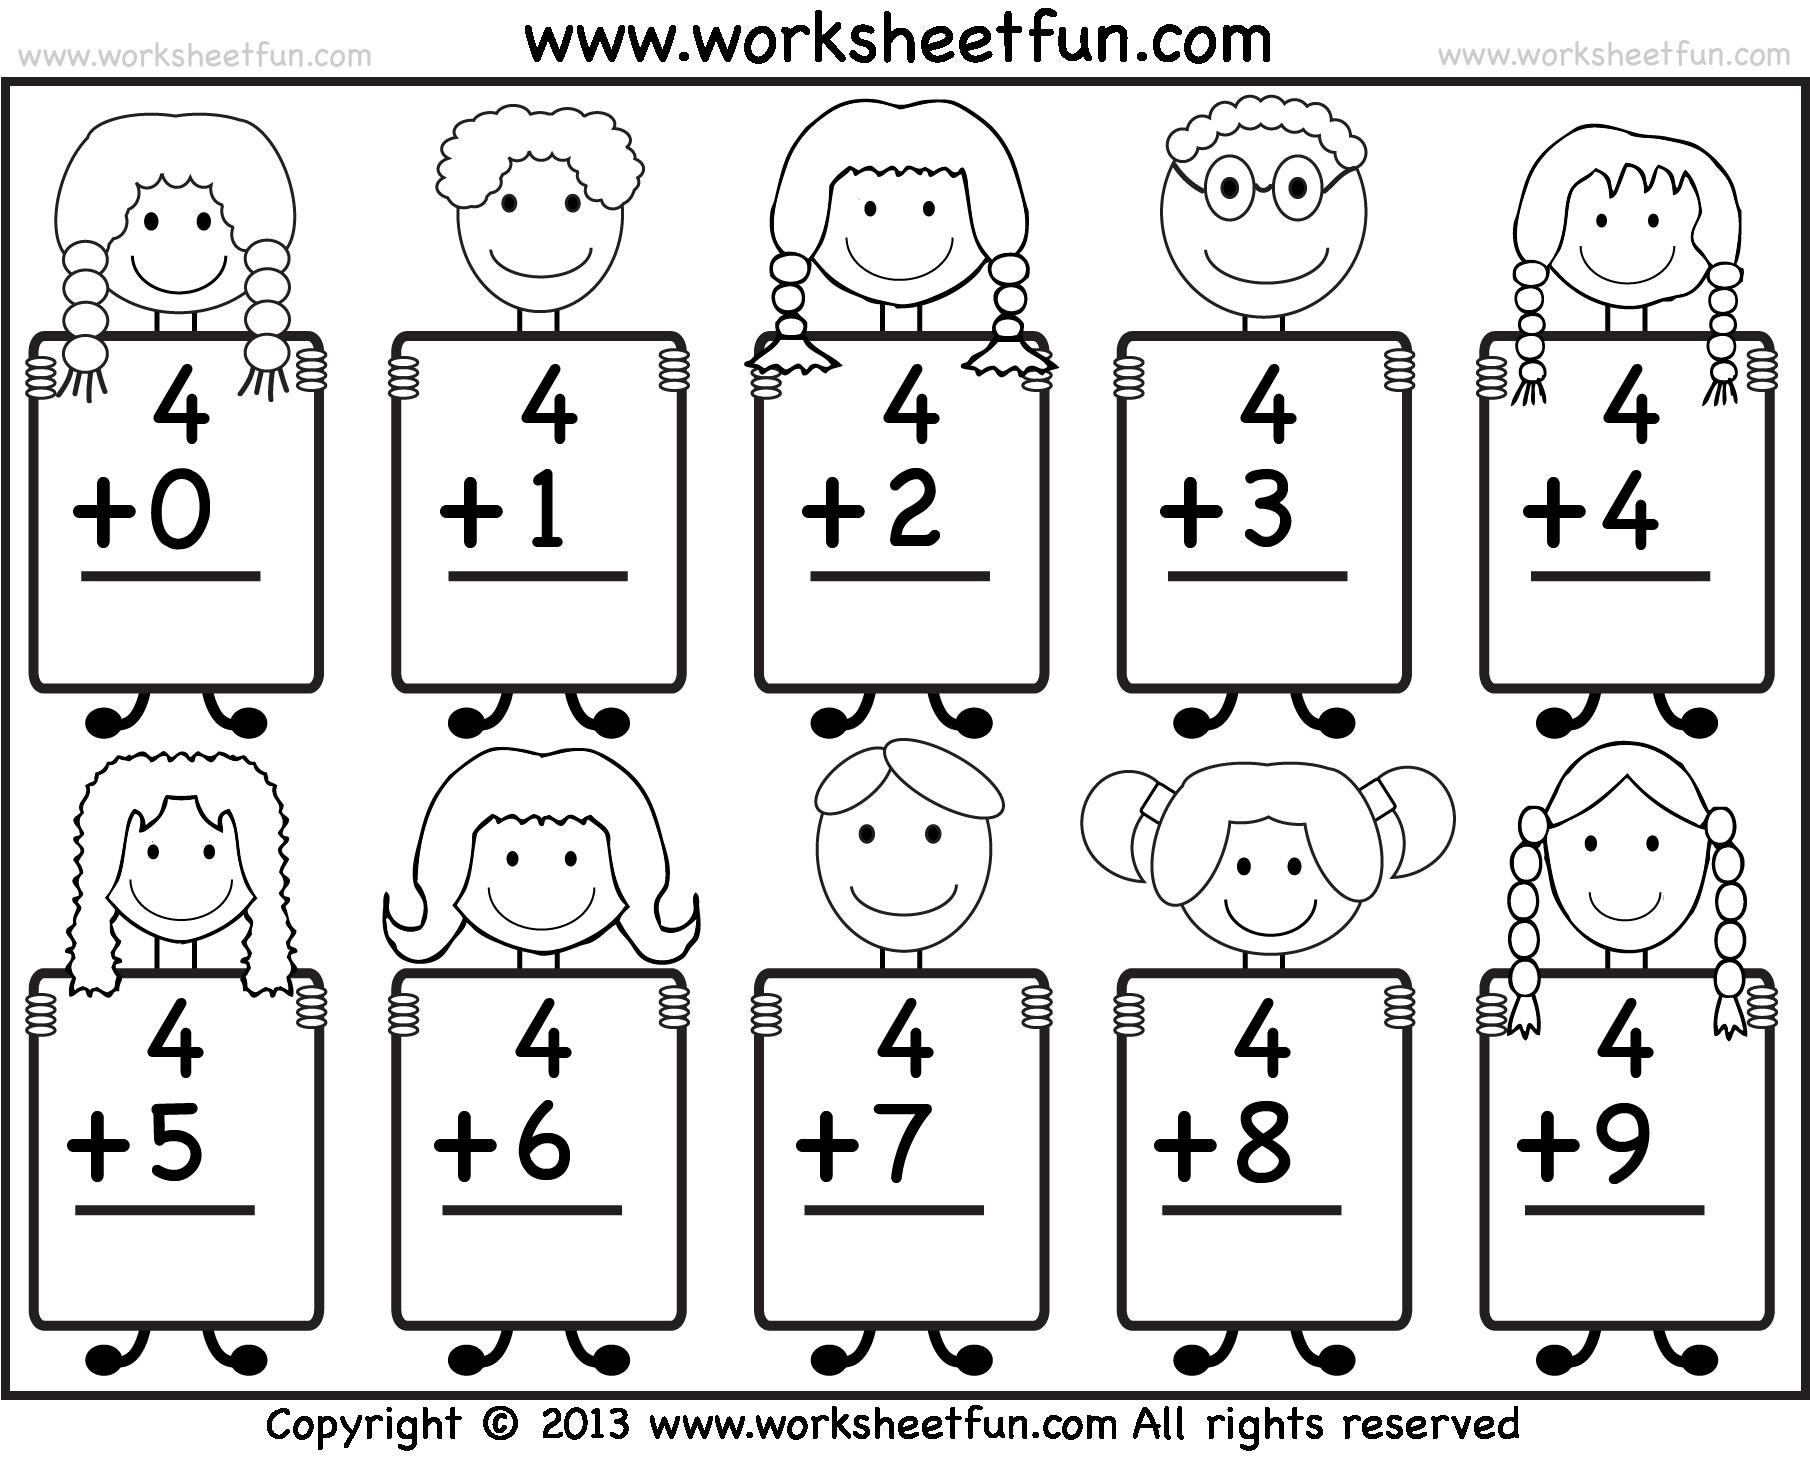 Worksheets Printable Math Worksheets For Kids free printable math worksheets for kindergarten addition 1 png 1